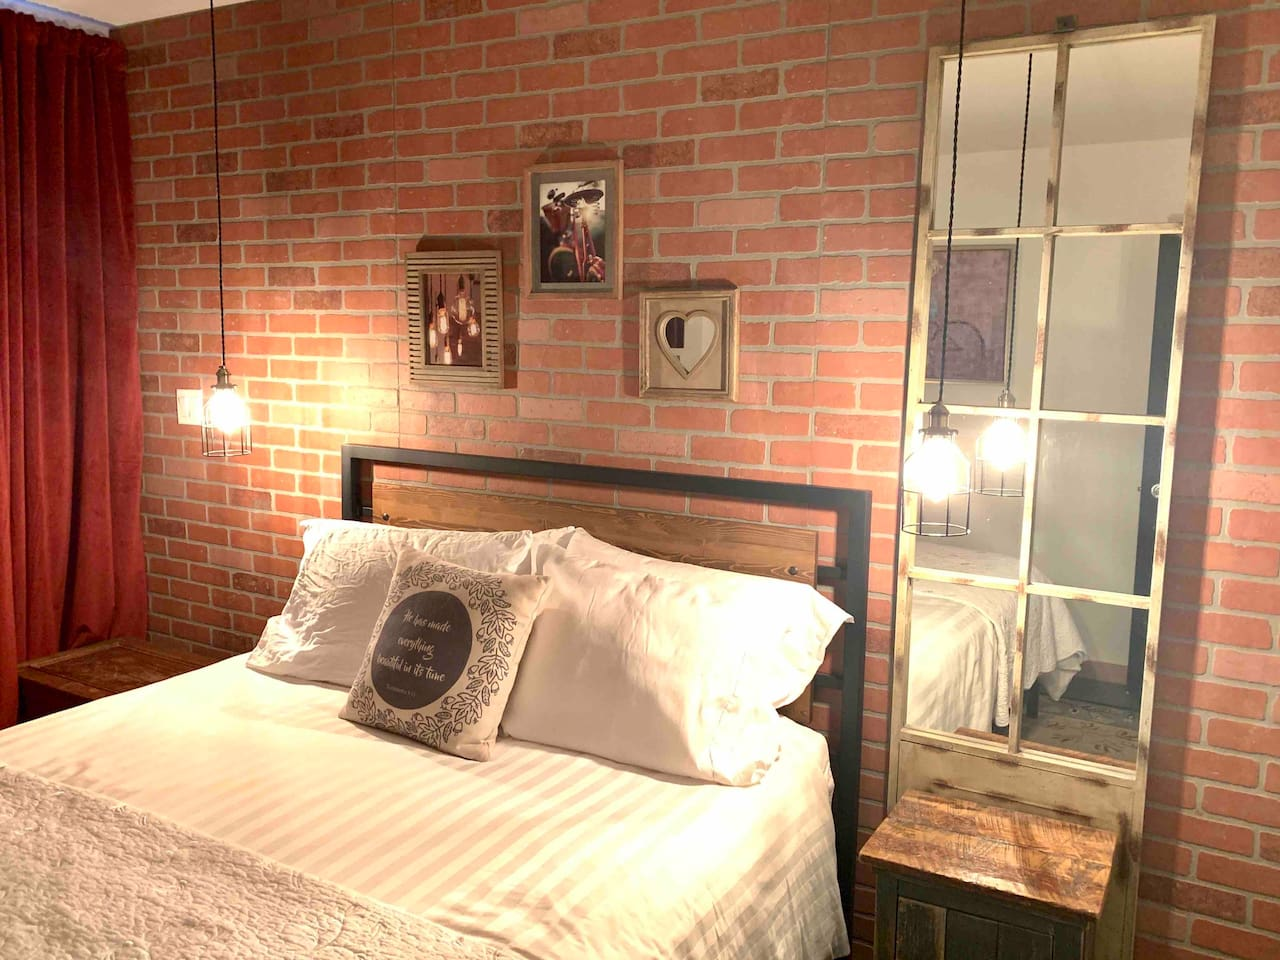 Adventure Room with comfortable queen bed and quality linens. Beautiful brick decor as a backdrop for industrial furnishings